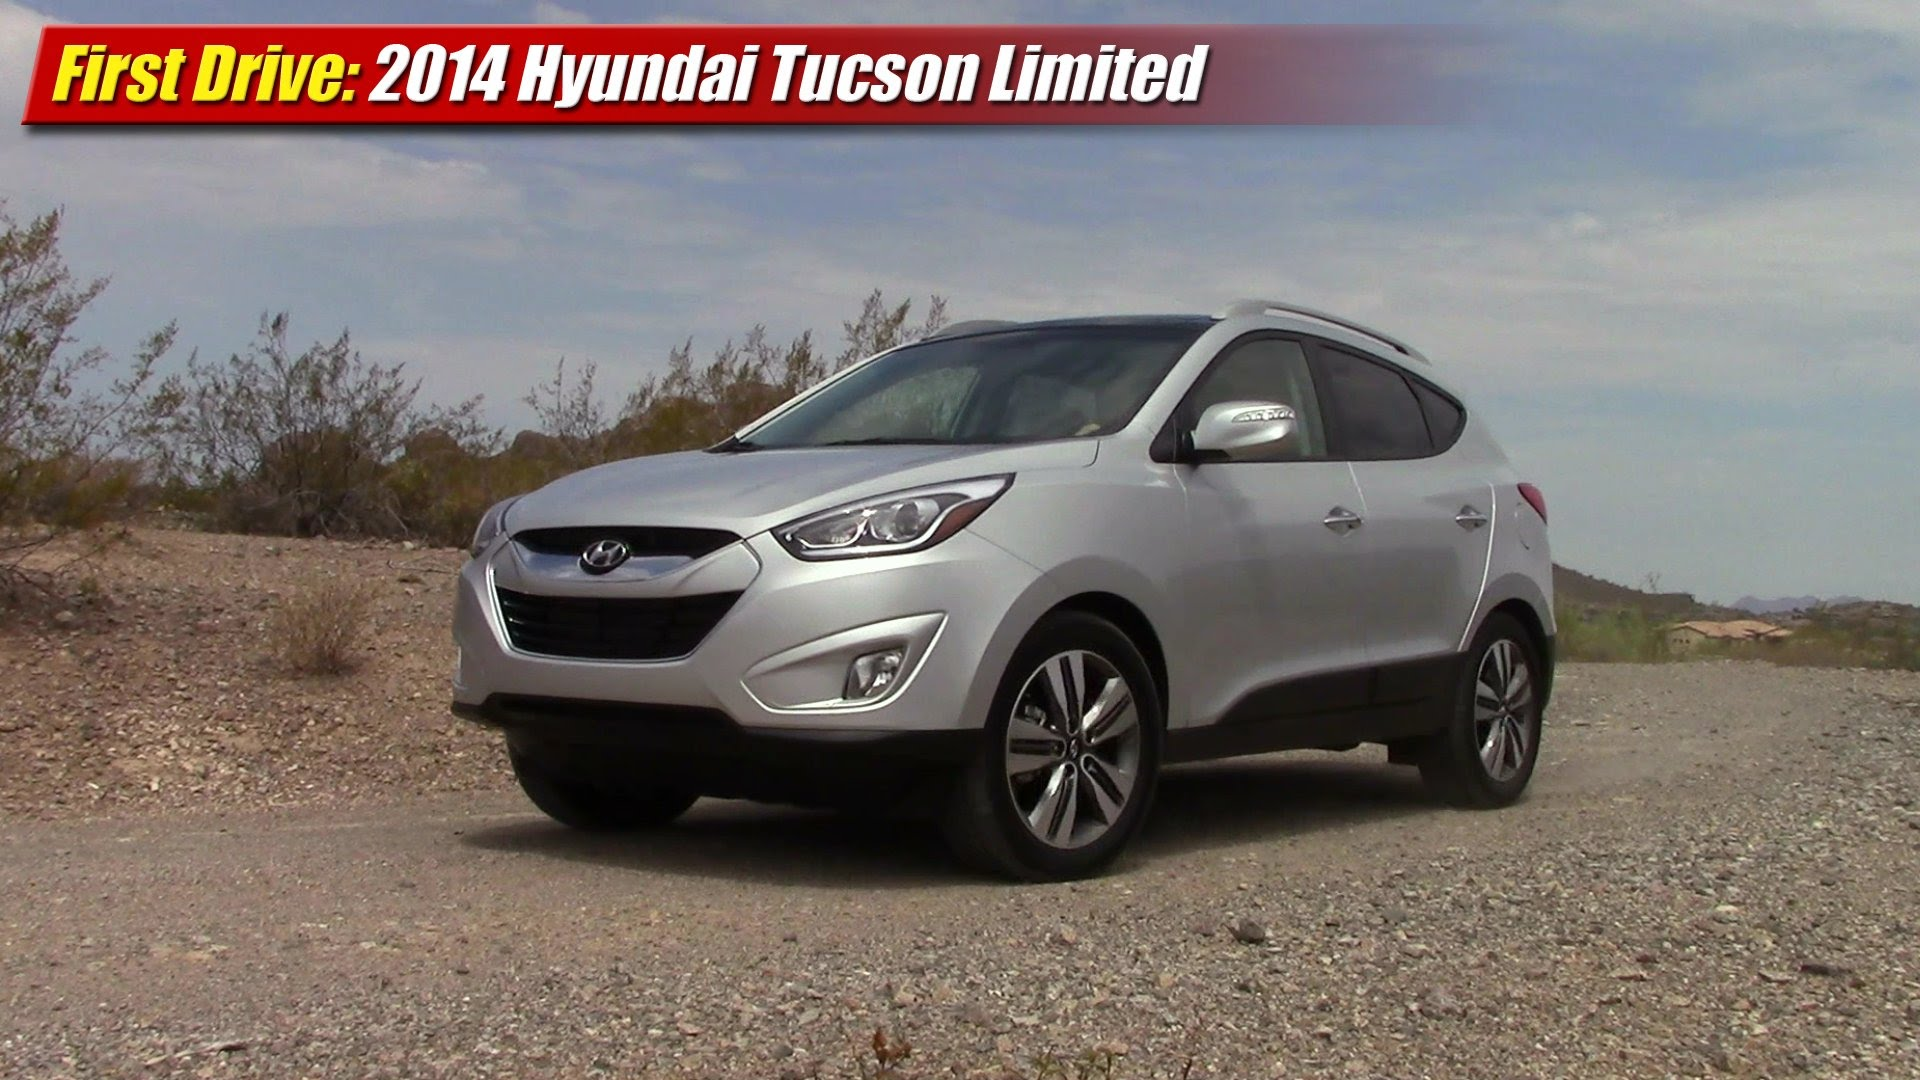 First Drive 2014 Hyundai Tucson Limited Testdriven Tv